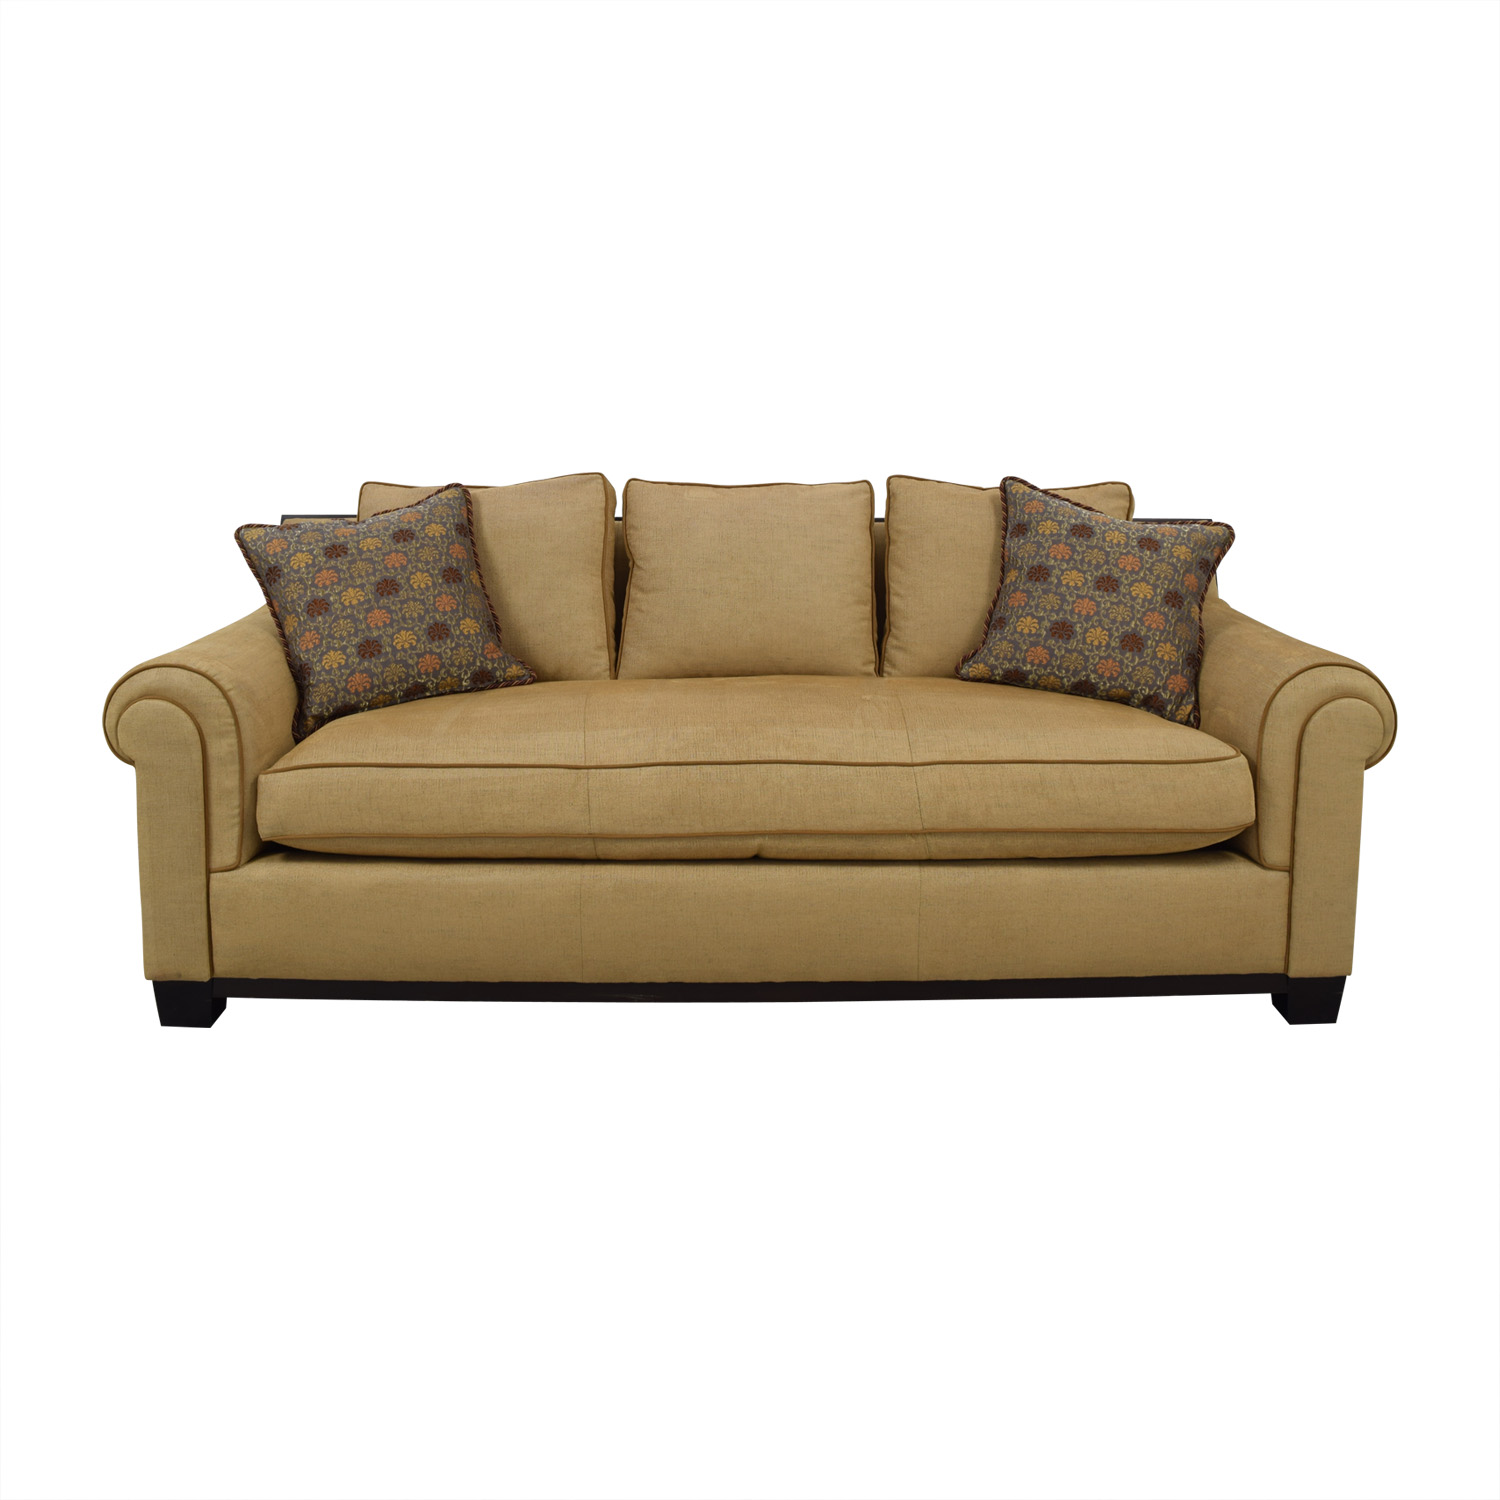 buy Custom Tan Single Cushion Sofa  Sofas